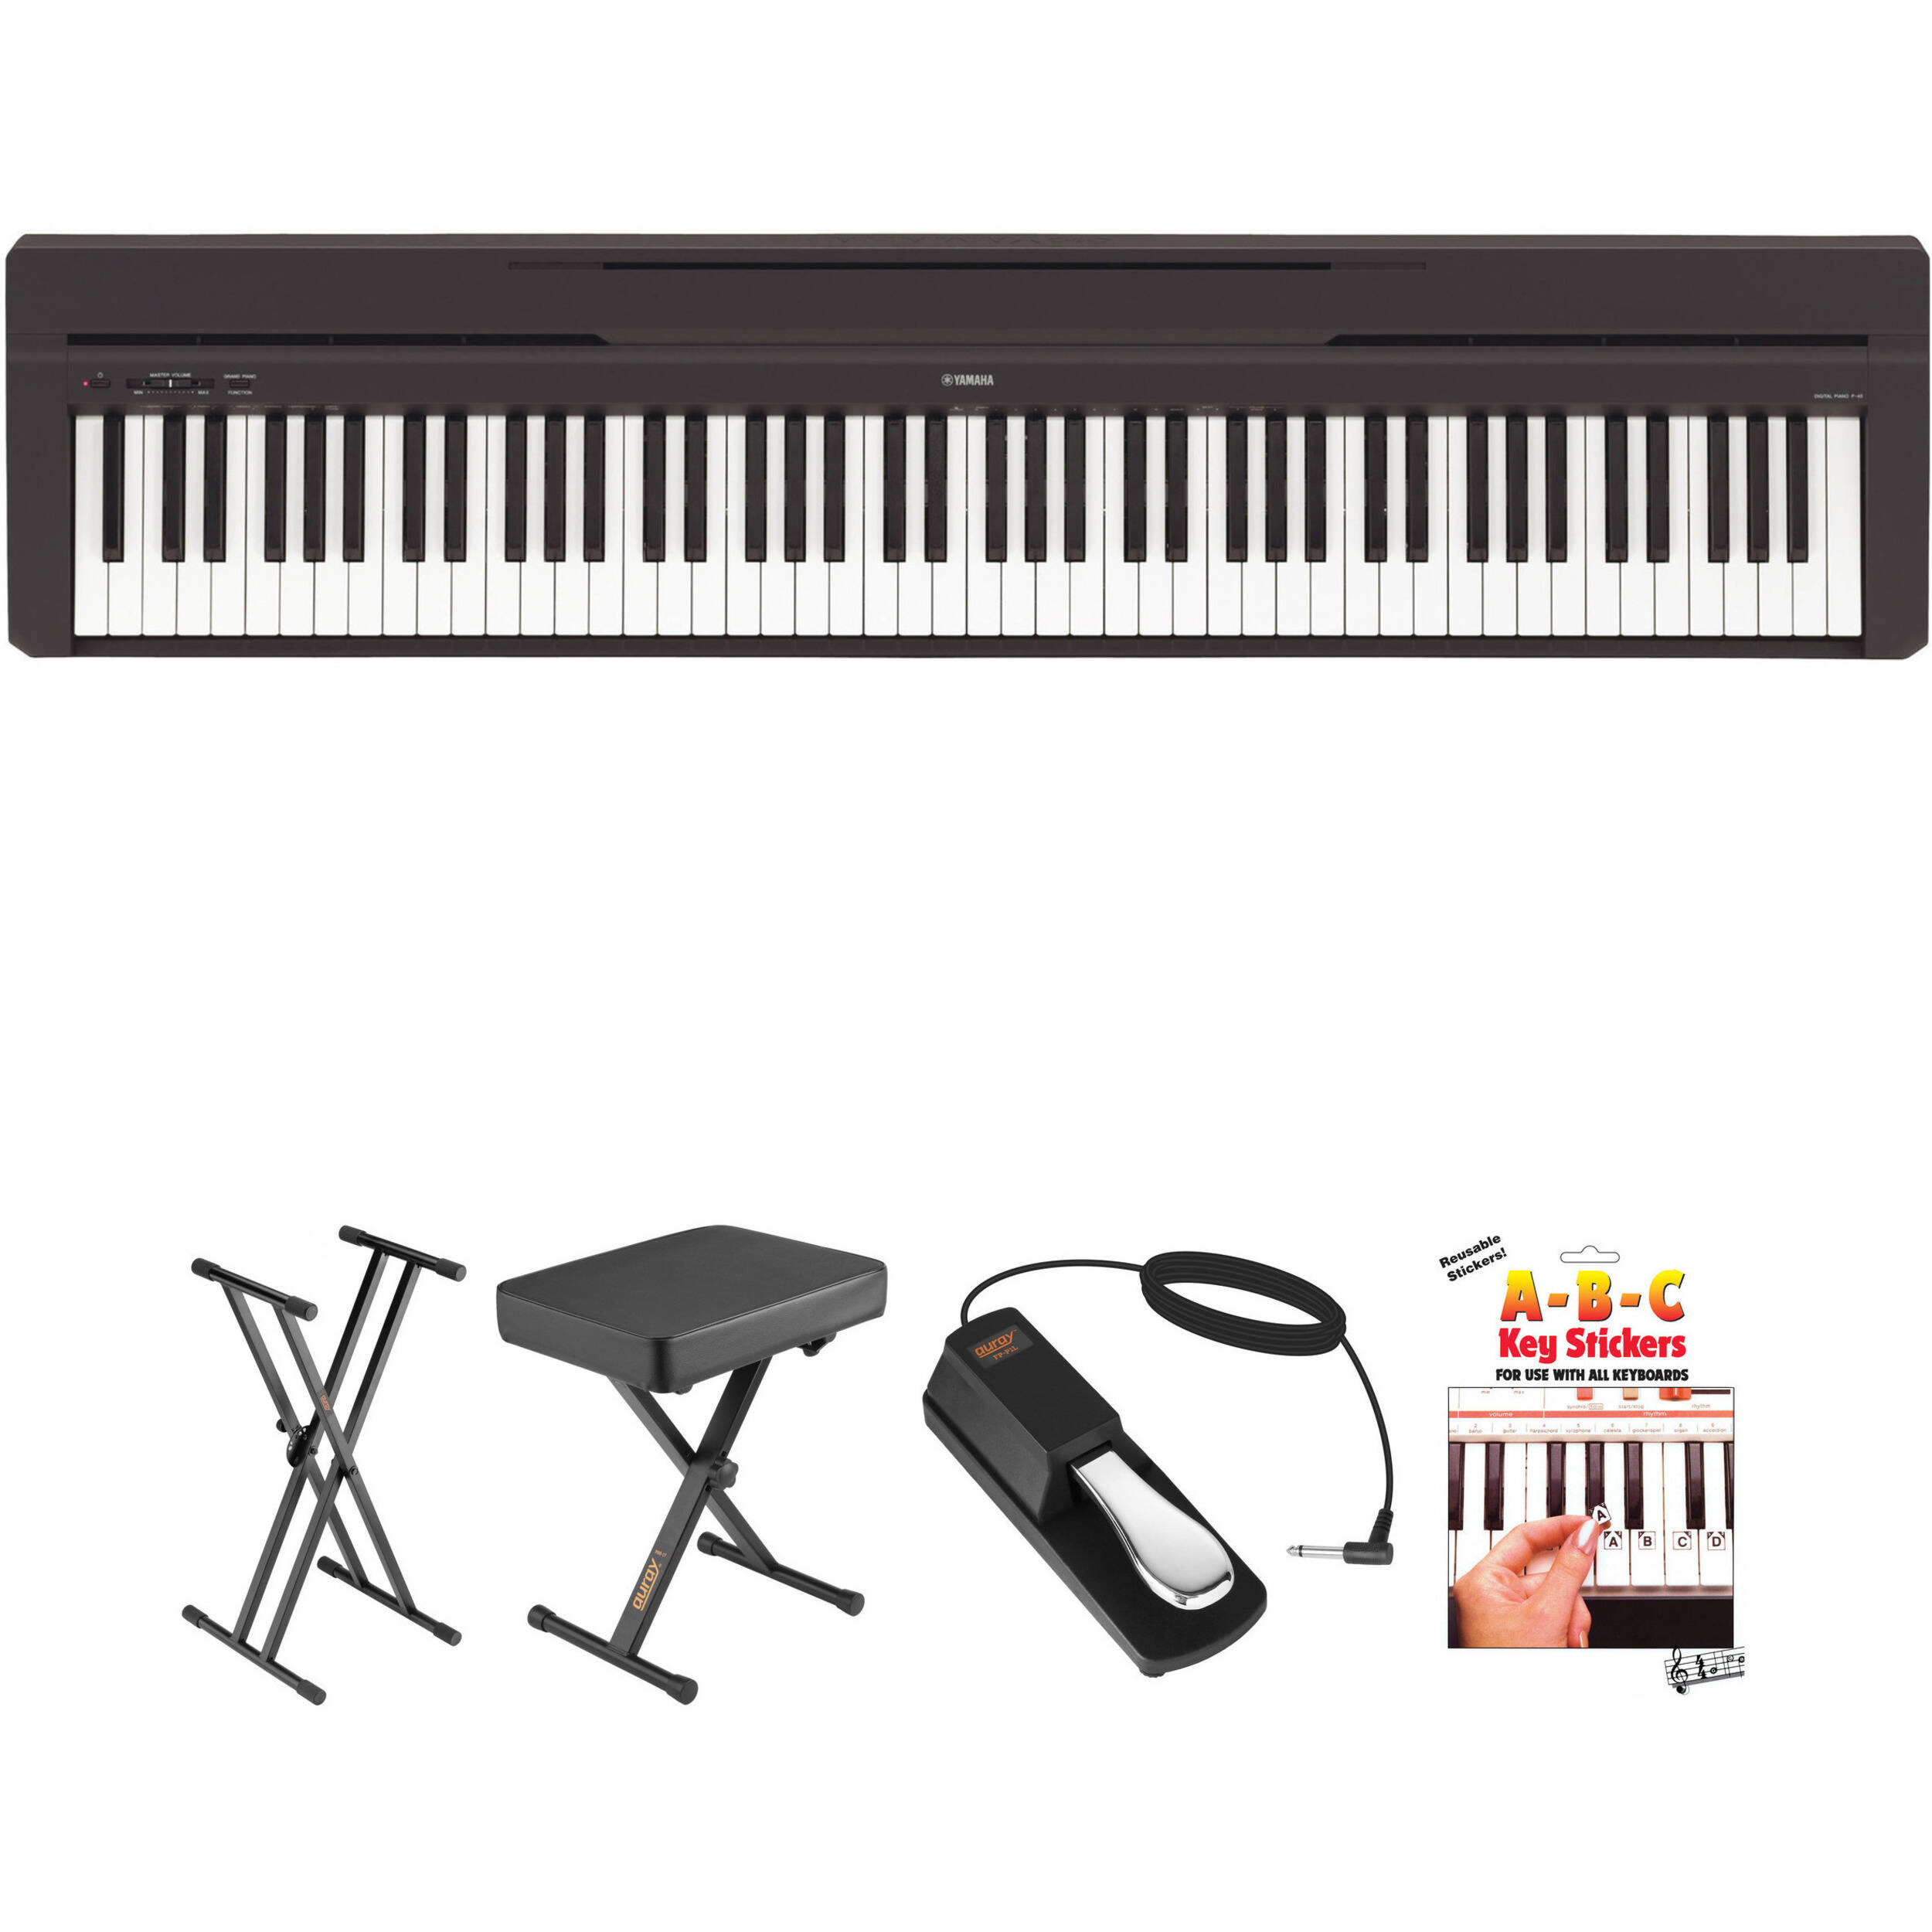 Deluxe Digital Piano Dust Cover Black For Yamaha P45 P115